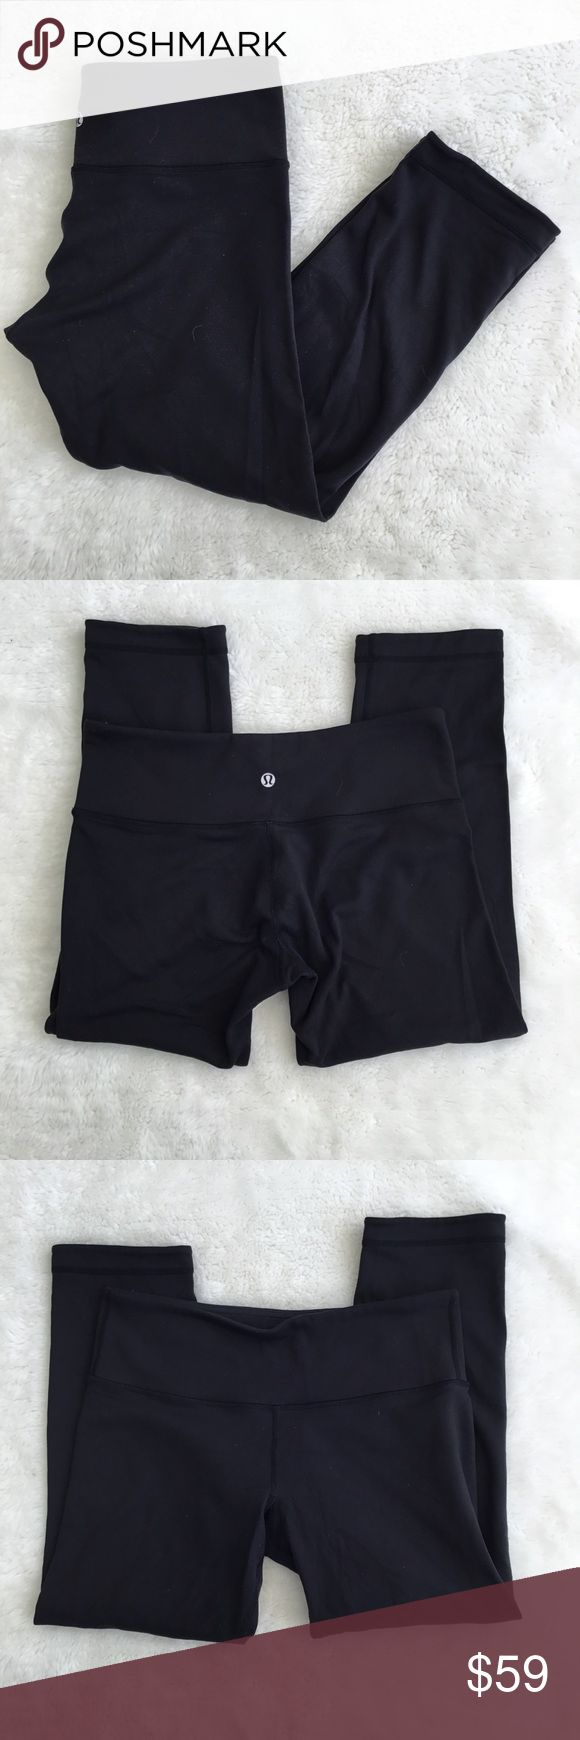 Lululemon Wunder Crop Black Pants Size 6 Pre-owned authentic Lululemon Wunder Crop Black Pants Size 6. Great condition. Please look at pictures for better reference. Happy Shopping! lululemon athletica Pants